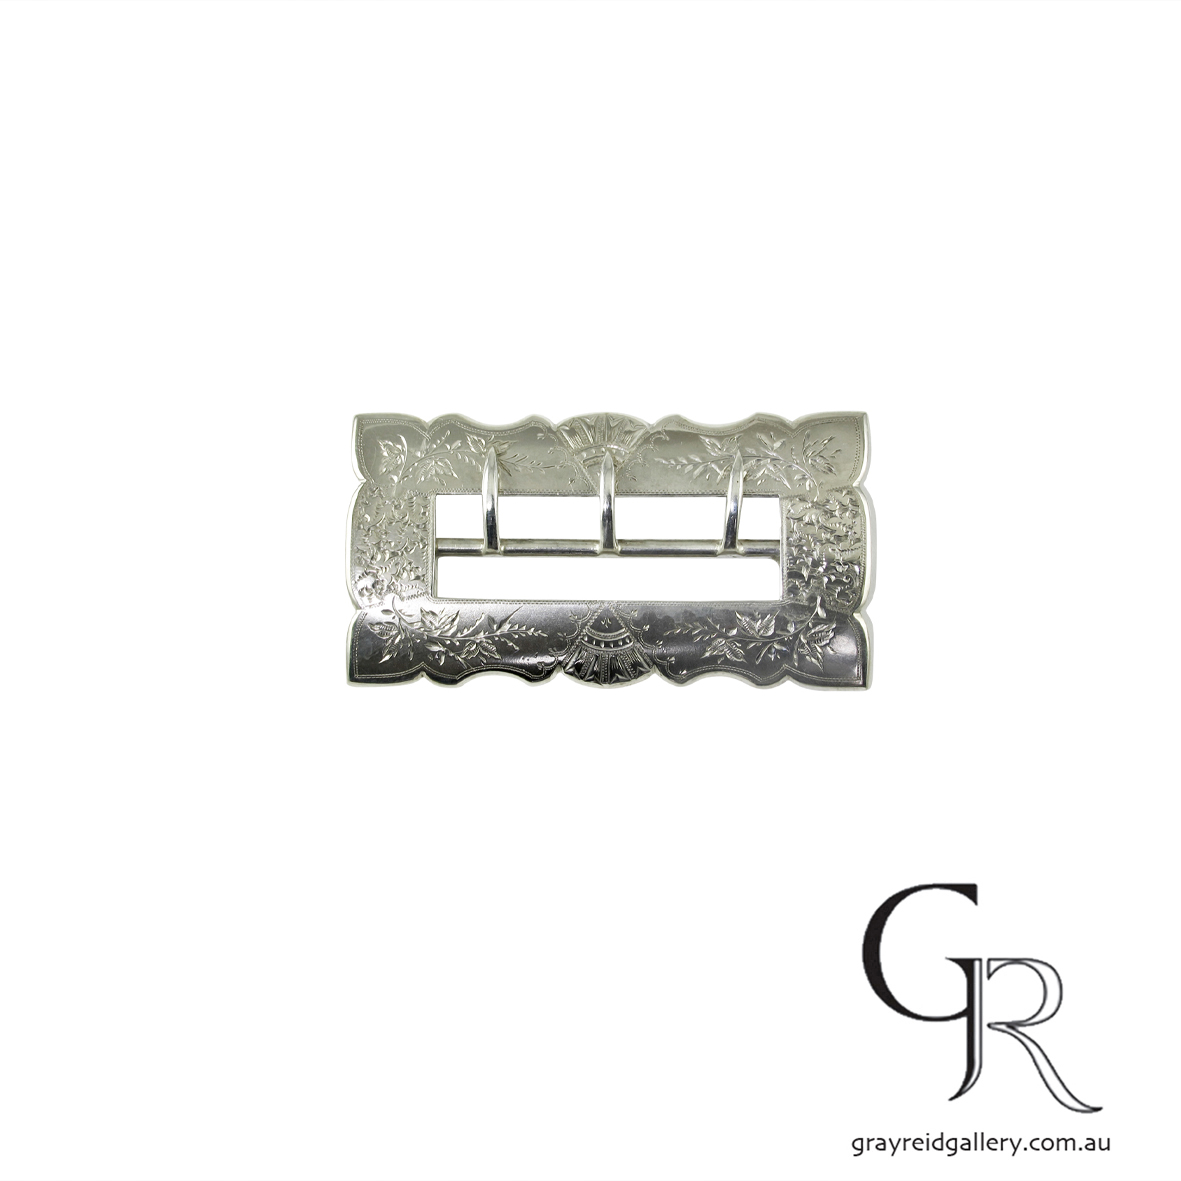 antiques and collectables melbourne sterling silver belt buckle Gray Reid Gallery 6.jpg